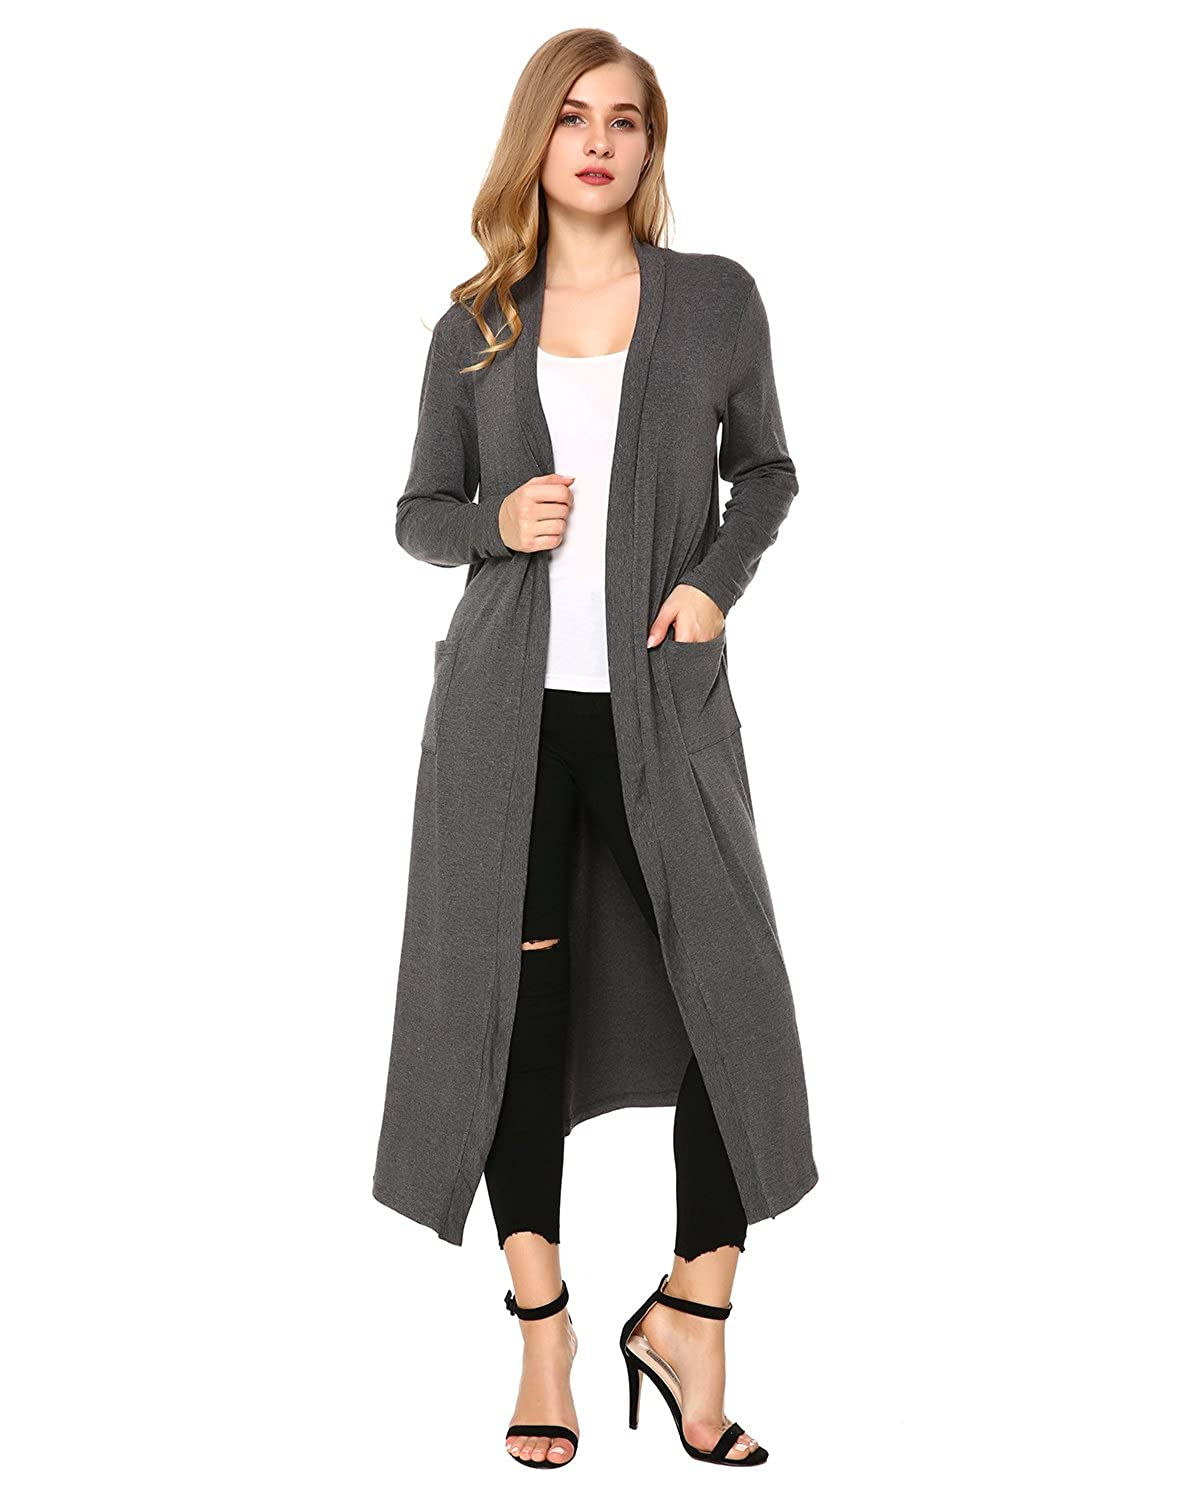 9d95fc4d2a5 Mixfeer Womens Long Sleeve Open Front Long Maxi Cardigan Longline Duster  Coat at Amazon Women s Clothing store